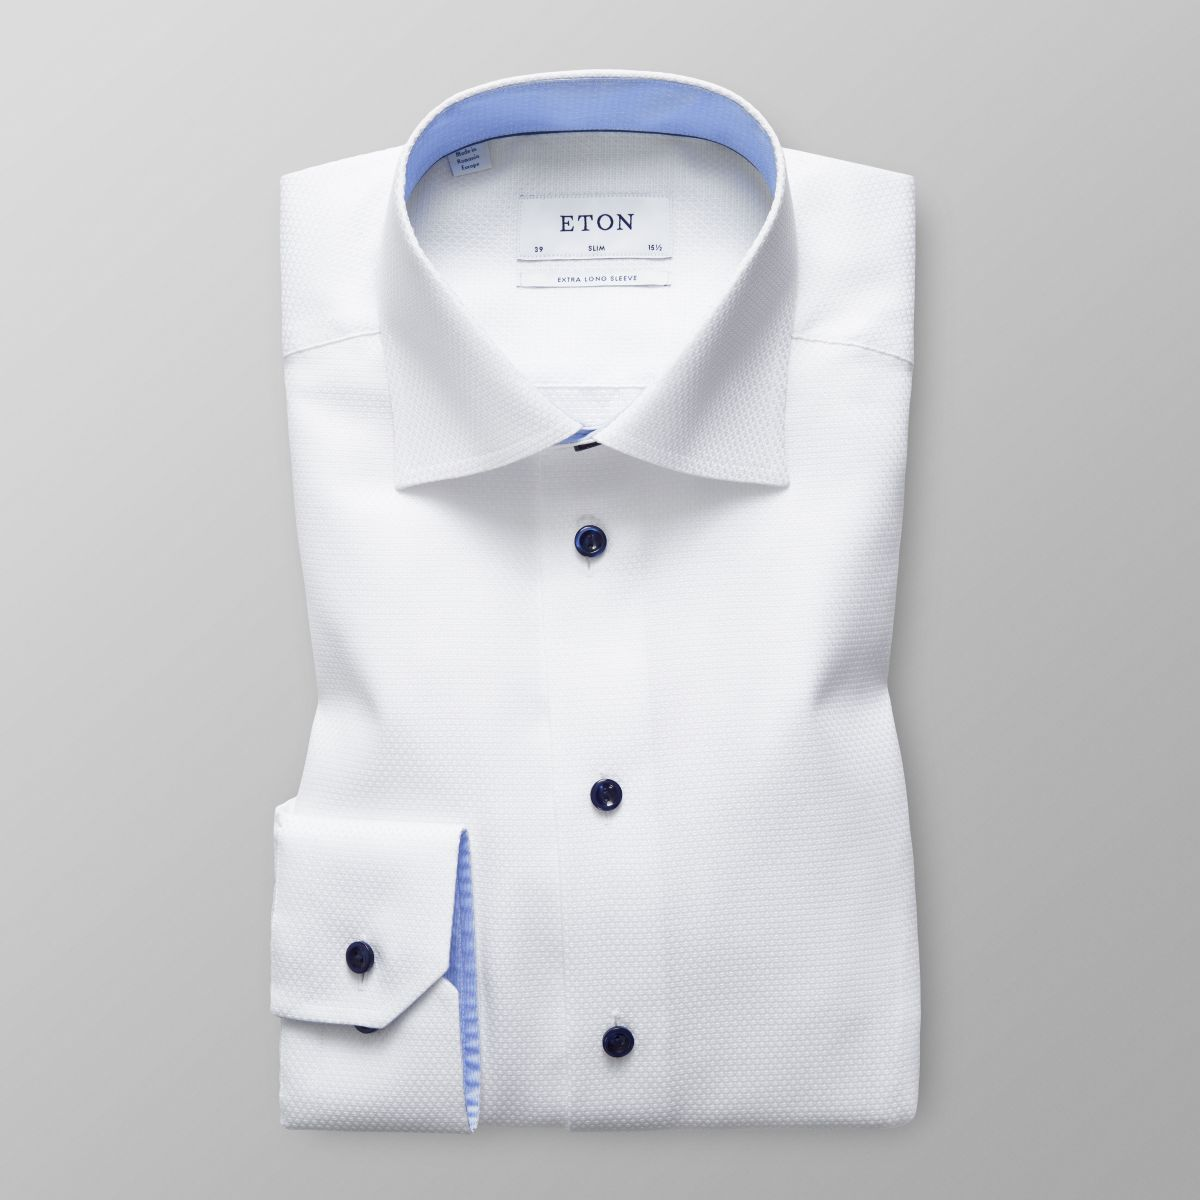 White Twill Shirt with Navy Buttons - Slim fit | Eton Shirts UK